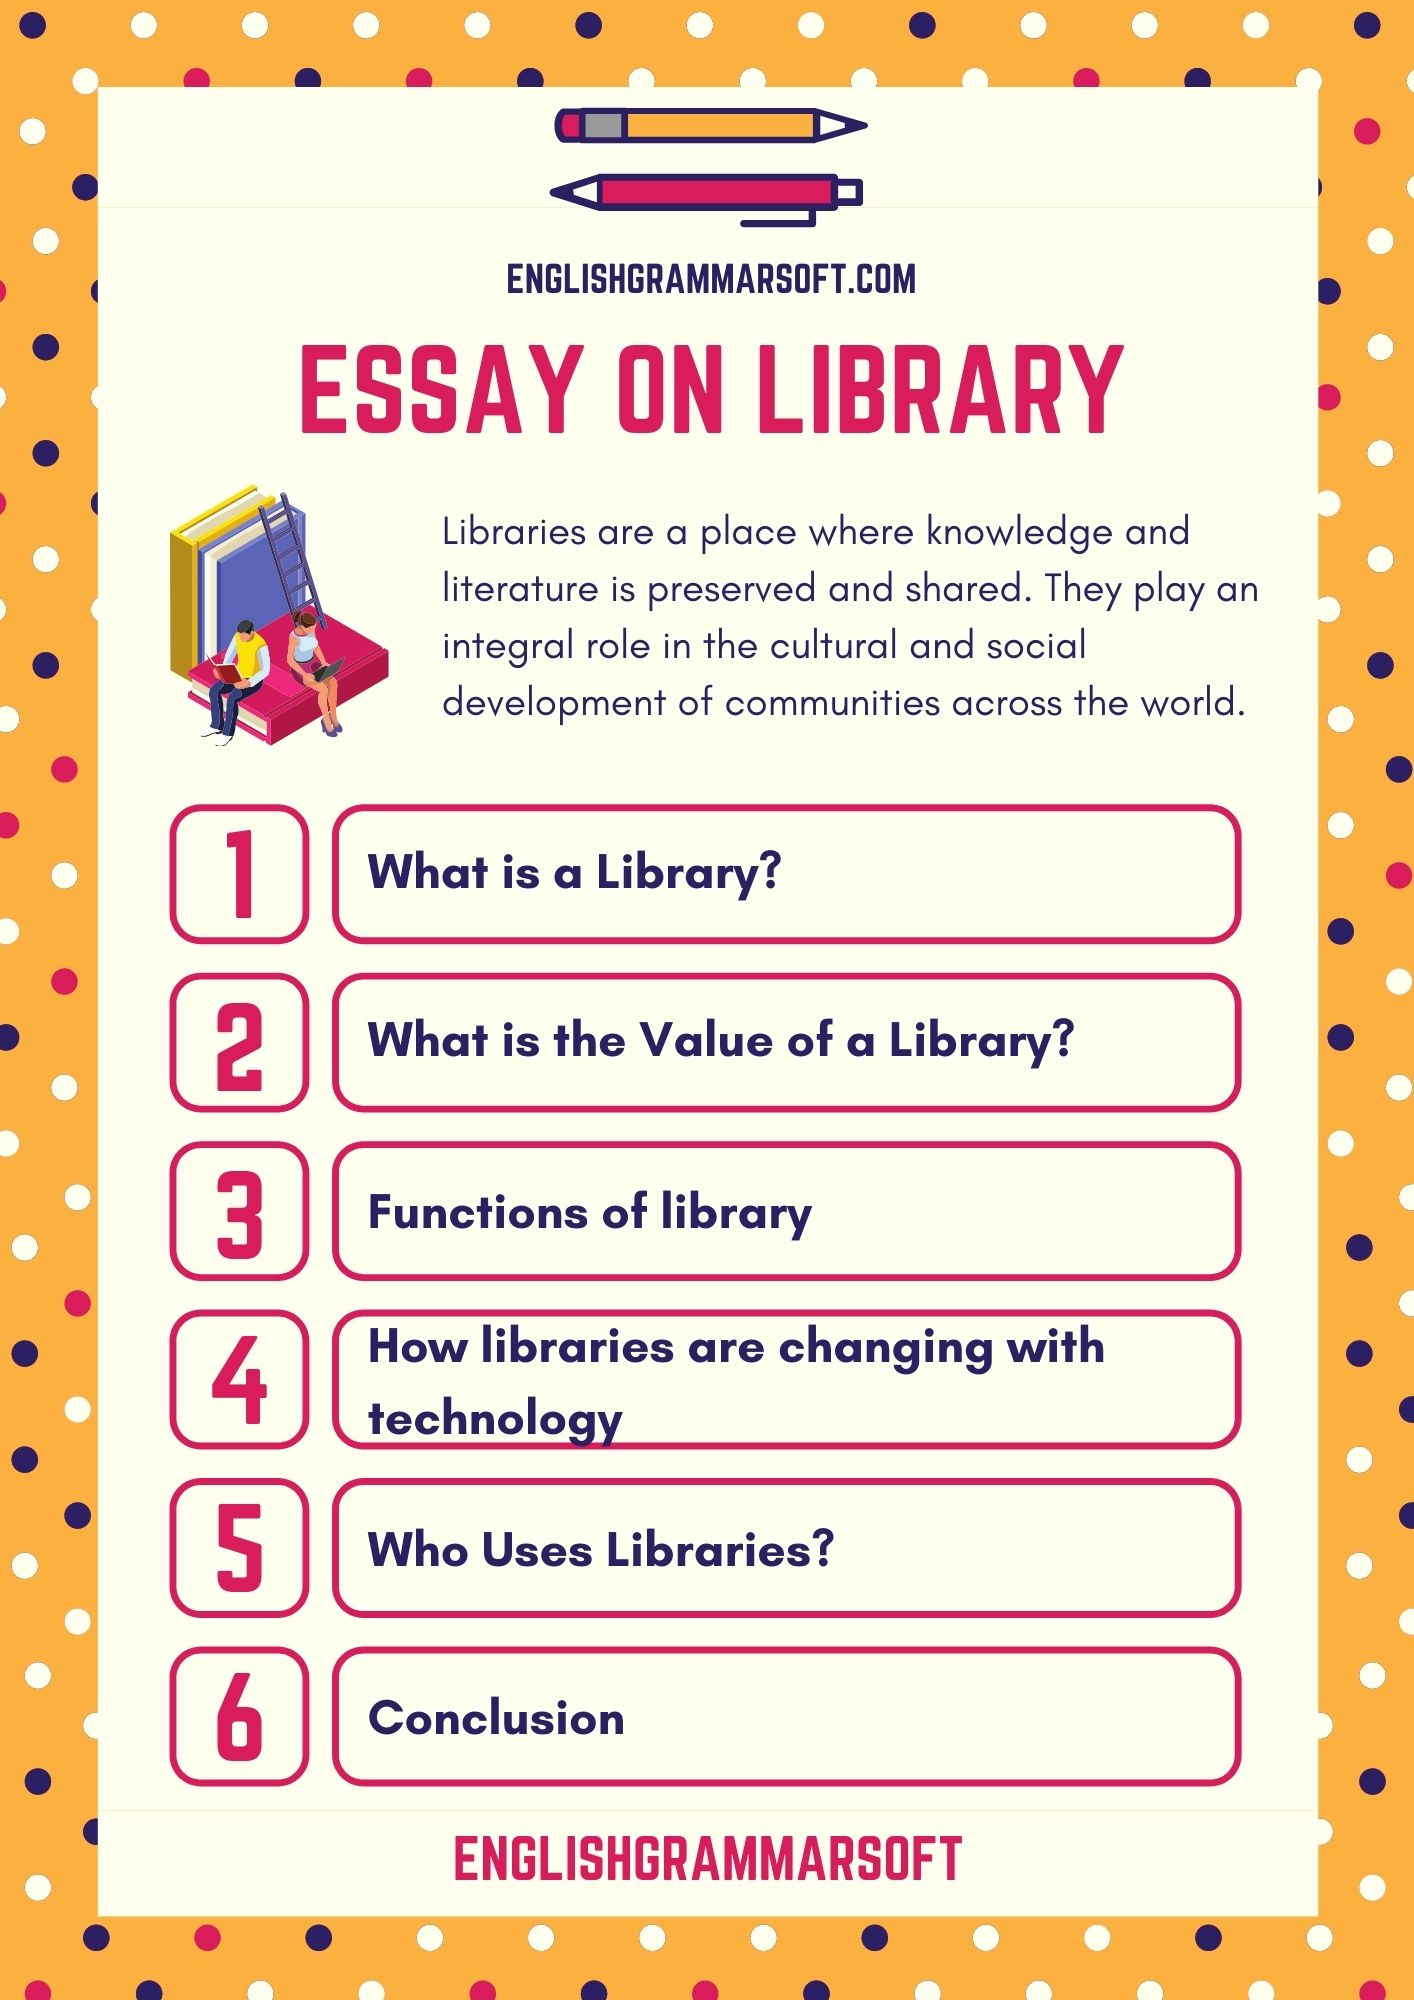 Essay on Library